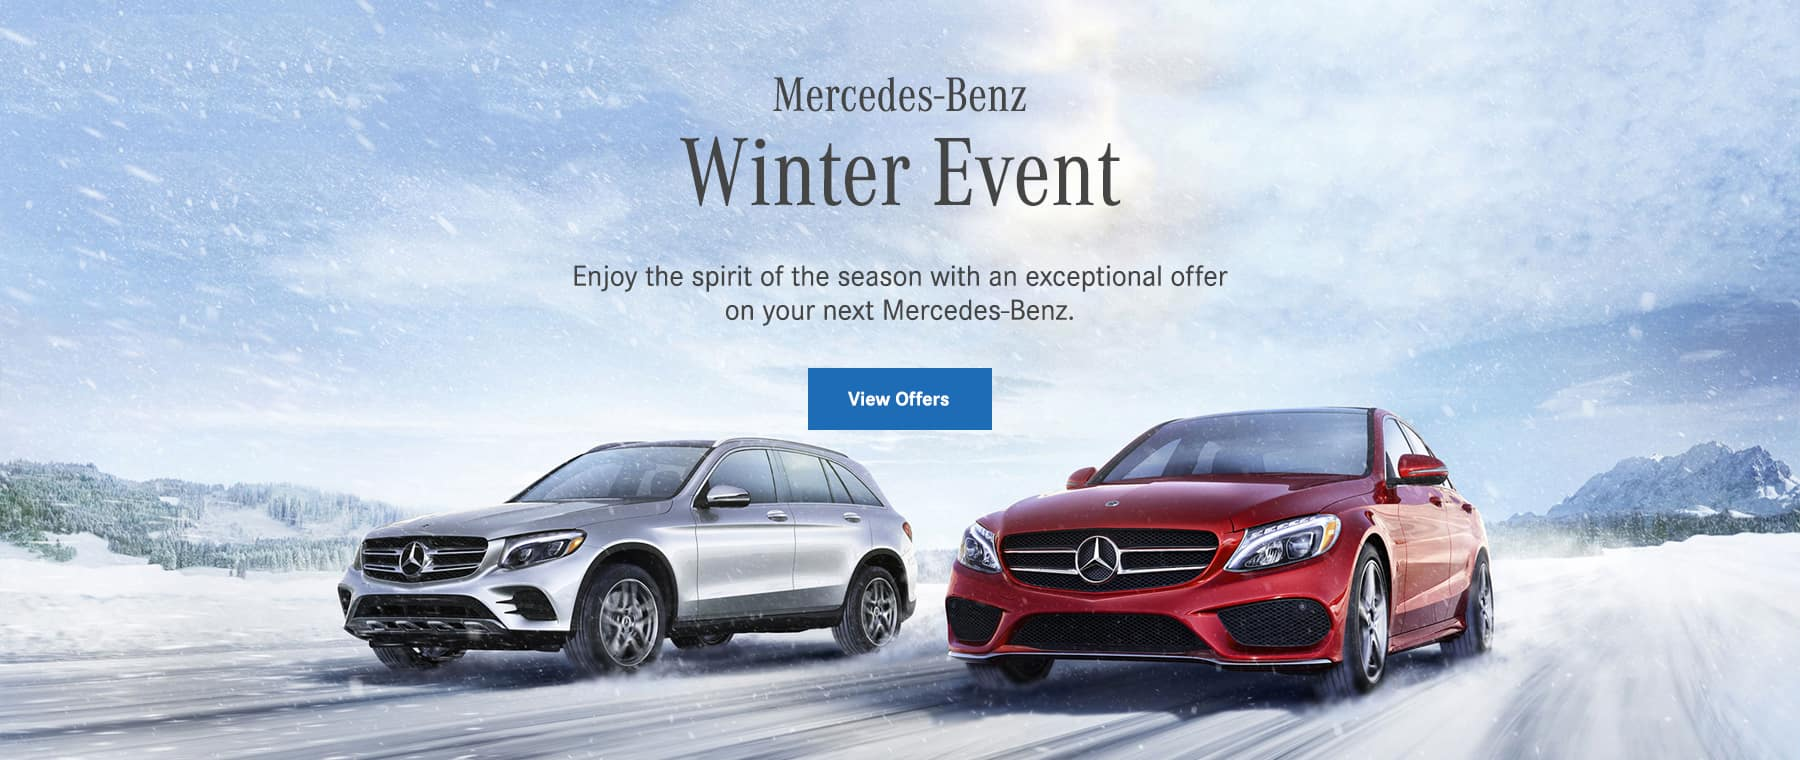 Mercedes benz of milwaukee north wi luxury auto dealership for Mercedes benz silver spring service